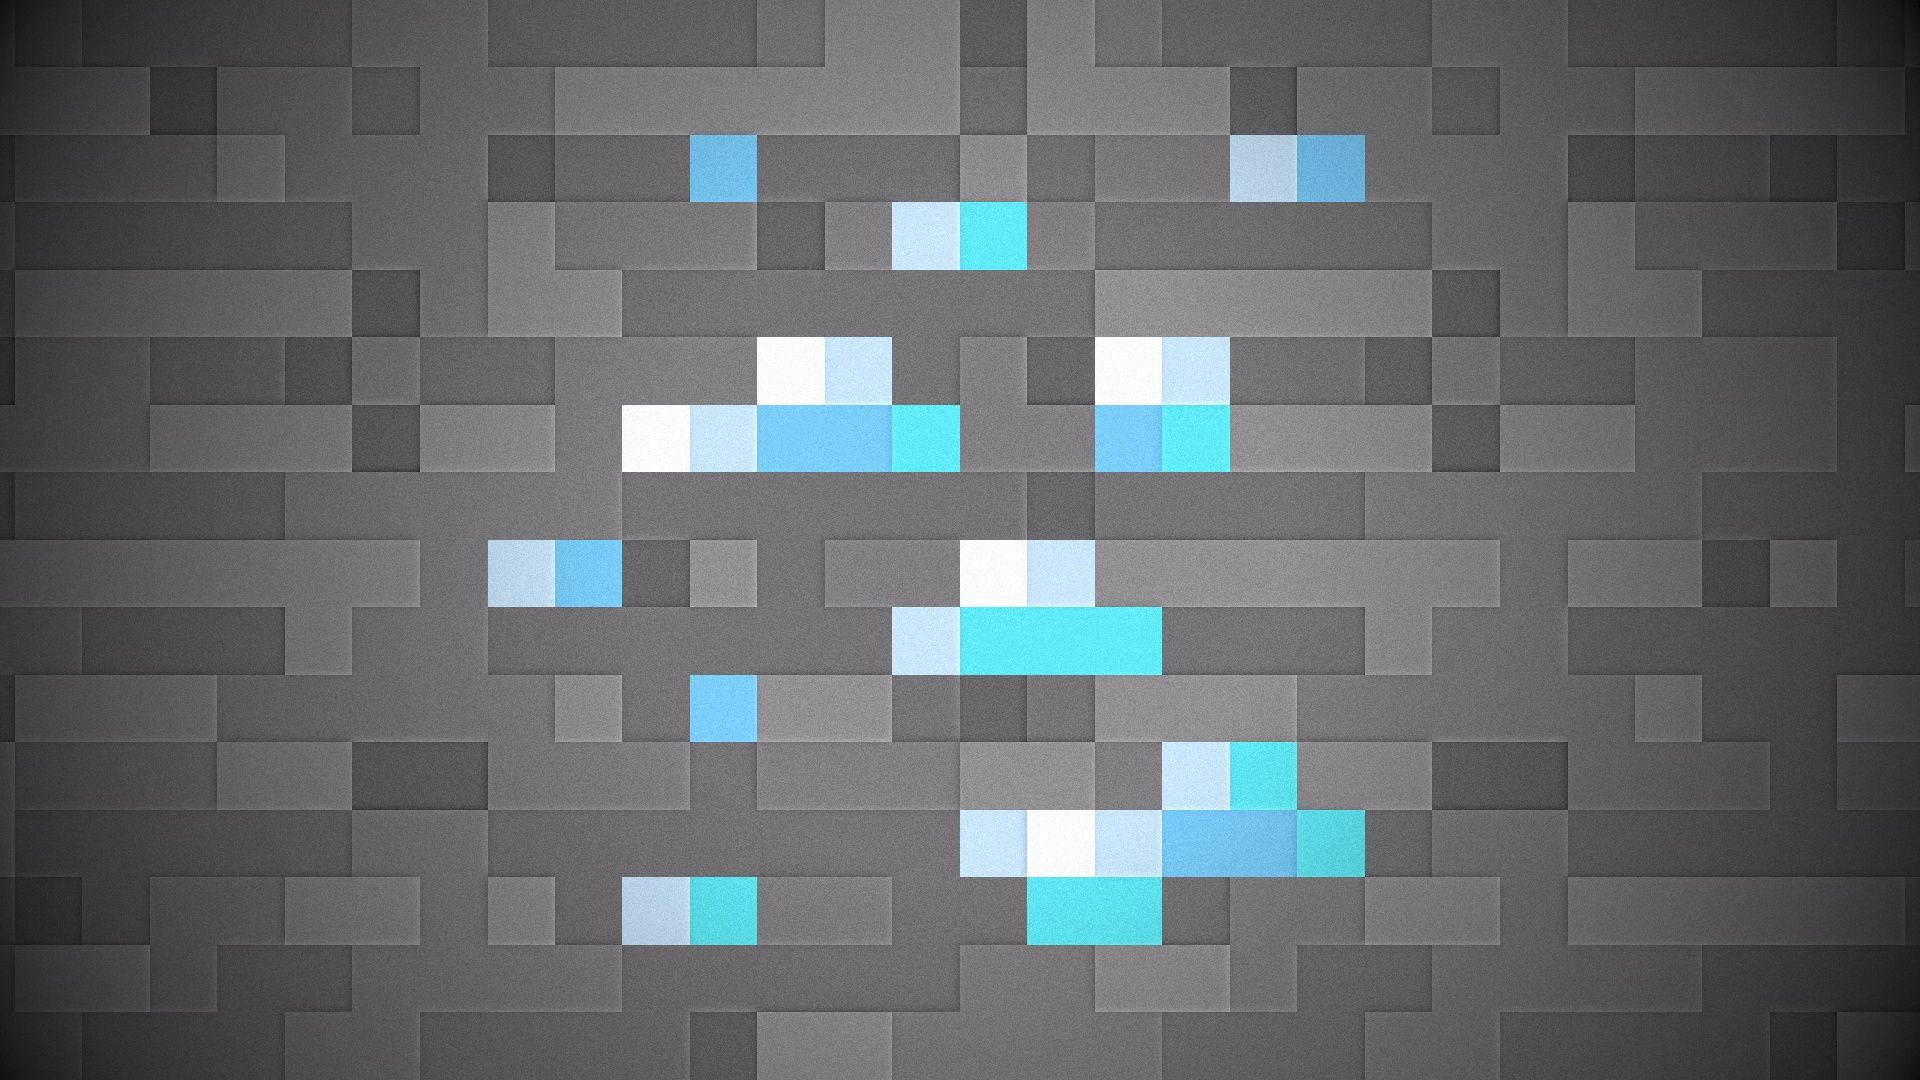 Minecraft Diamond Images Hd Wallpaper Minecraft Backgrounds For